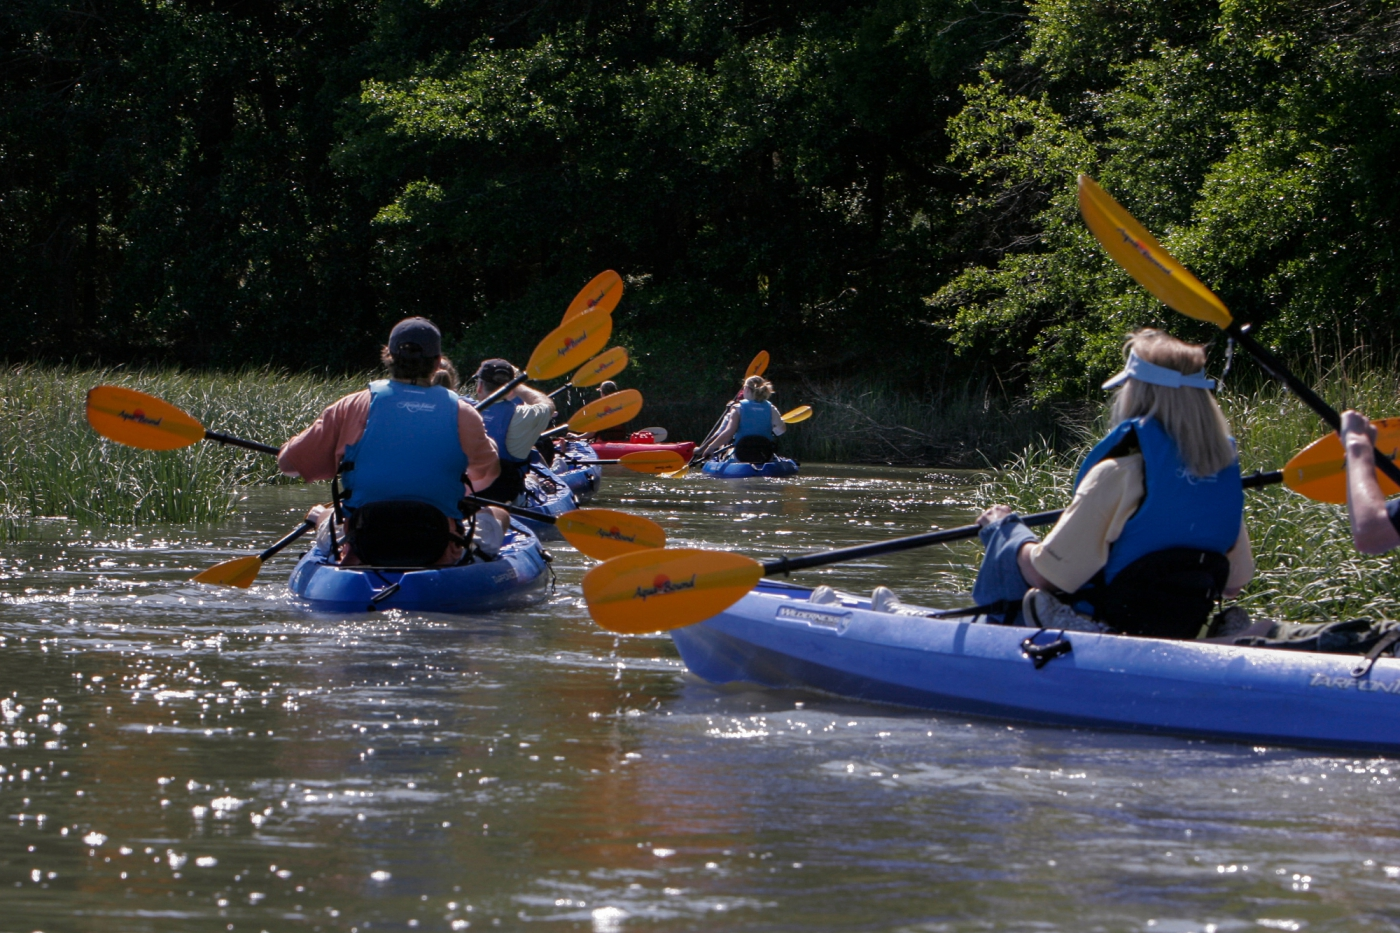 Grab a kayak and enjoy a guided tour through the waters of Kiawah Island.